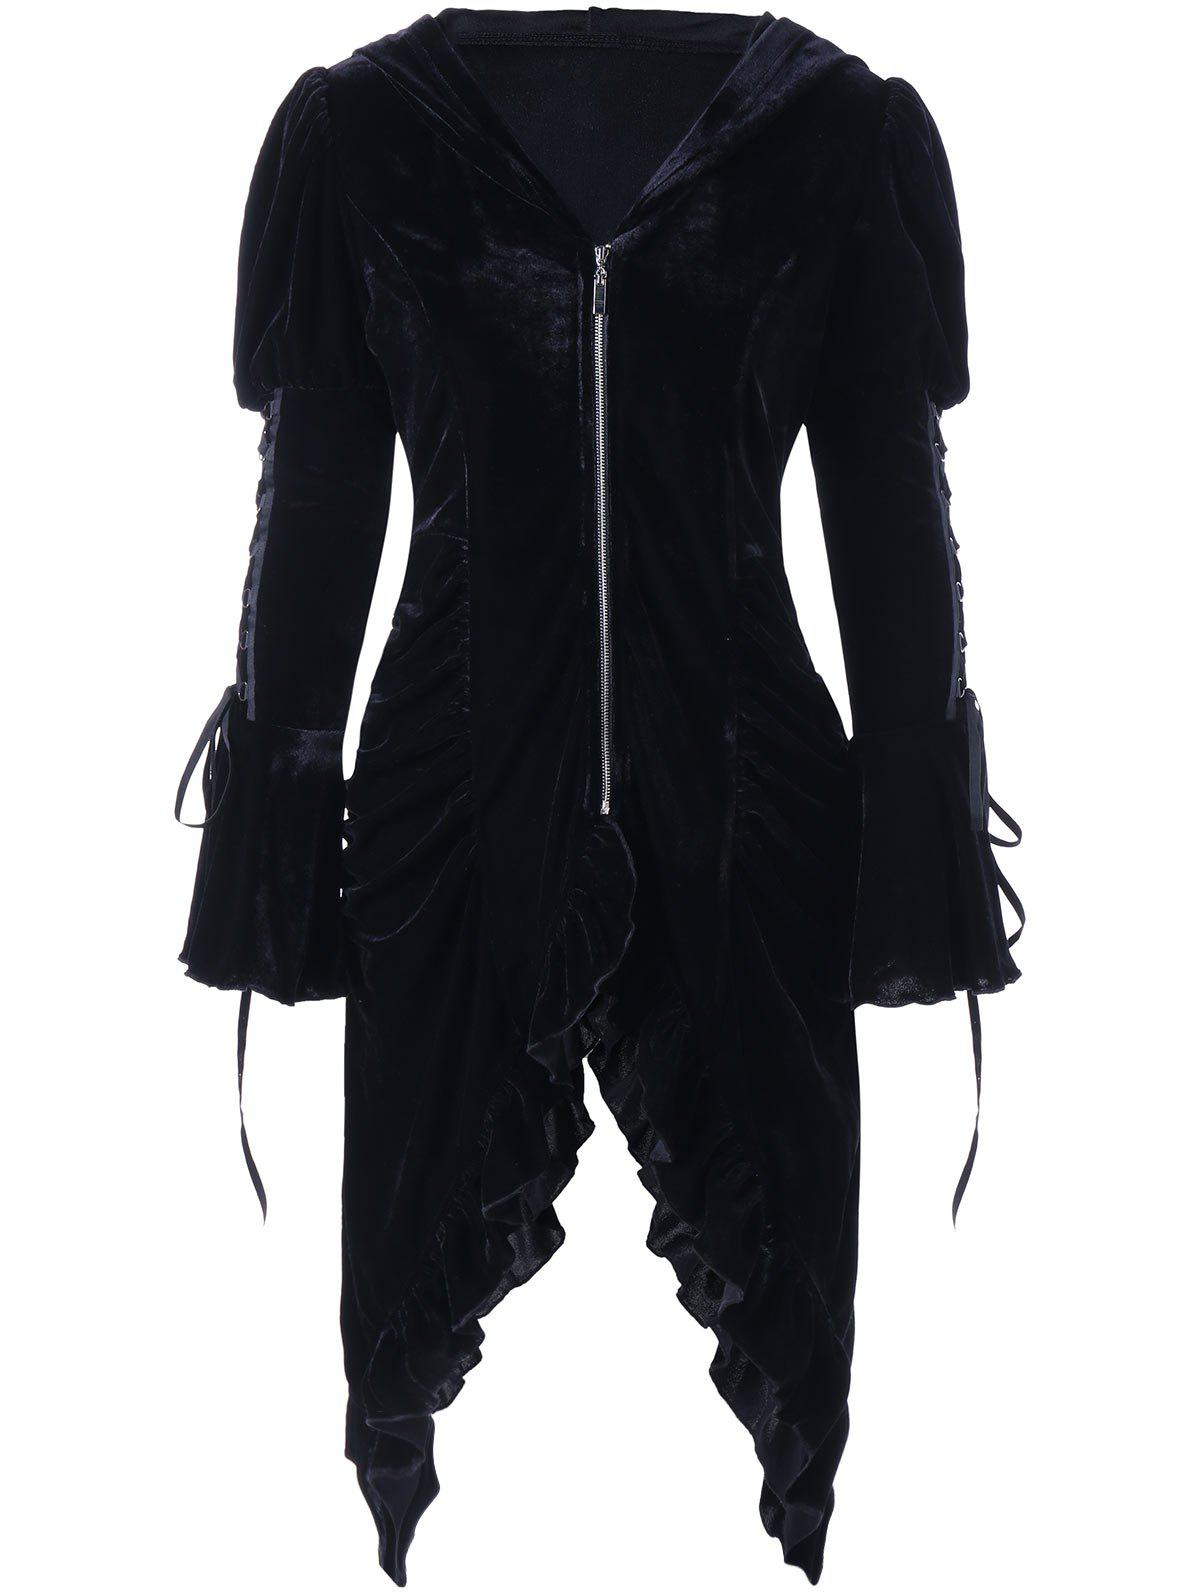 Buy Ruched Flounced Lace Up Hooded Coat